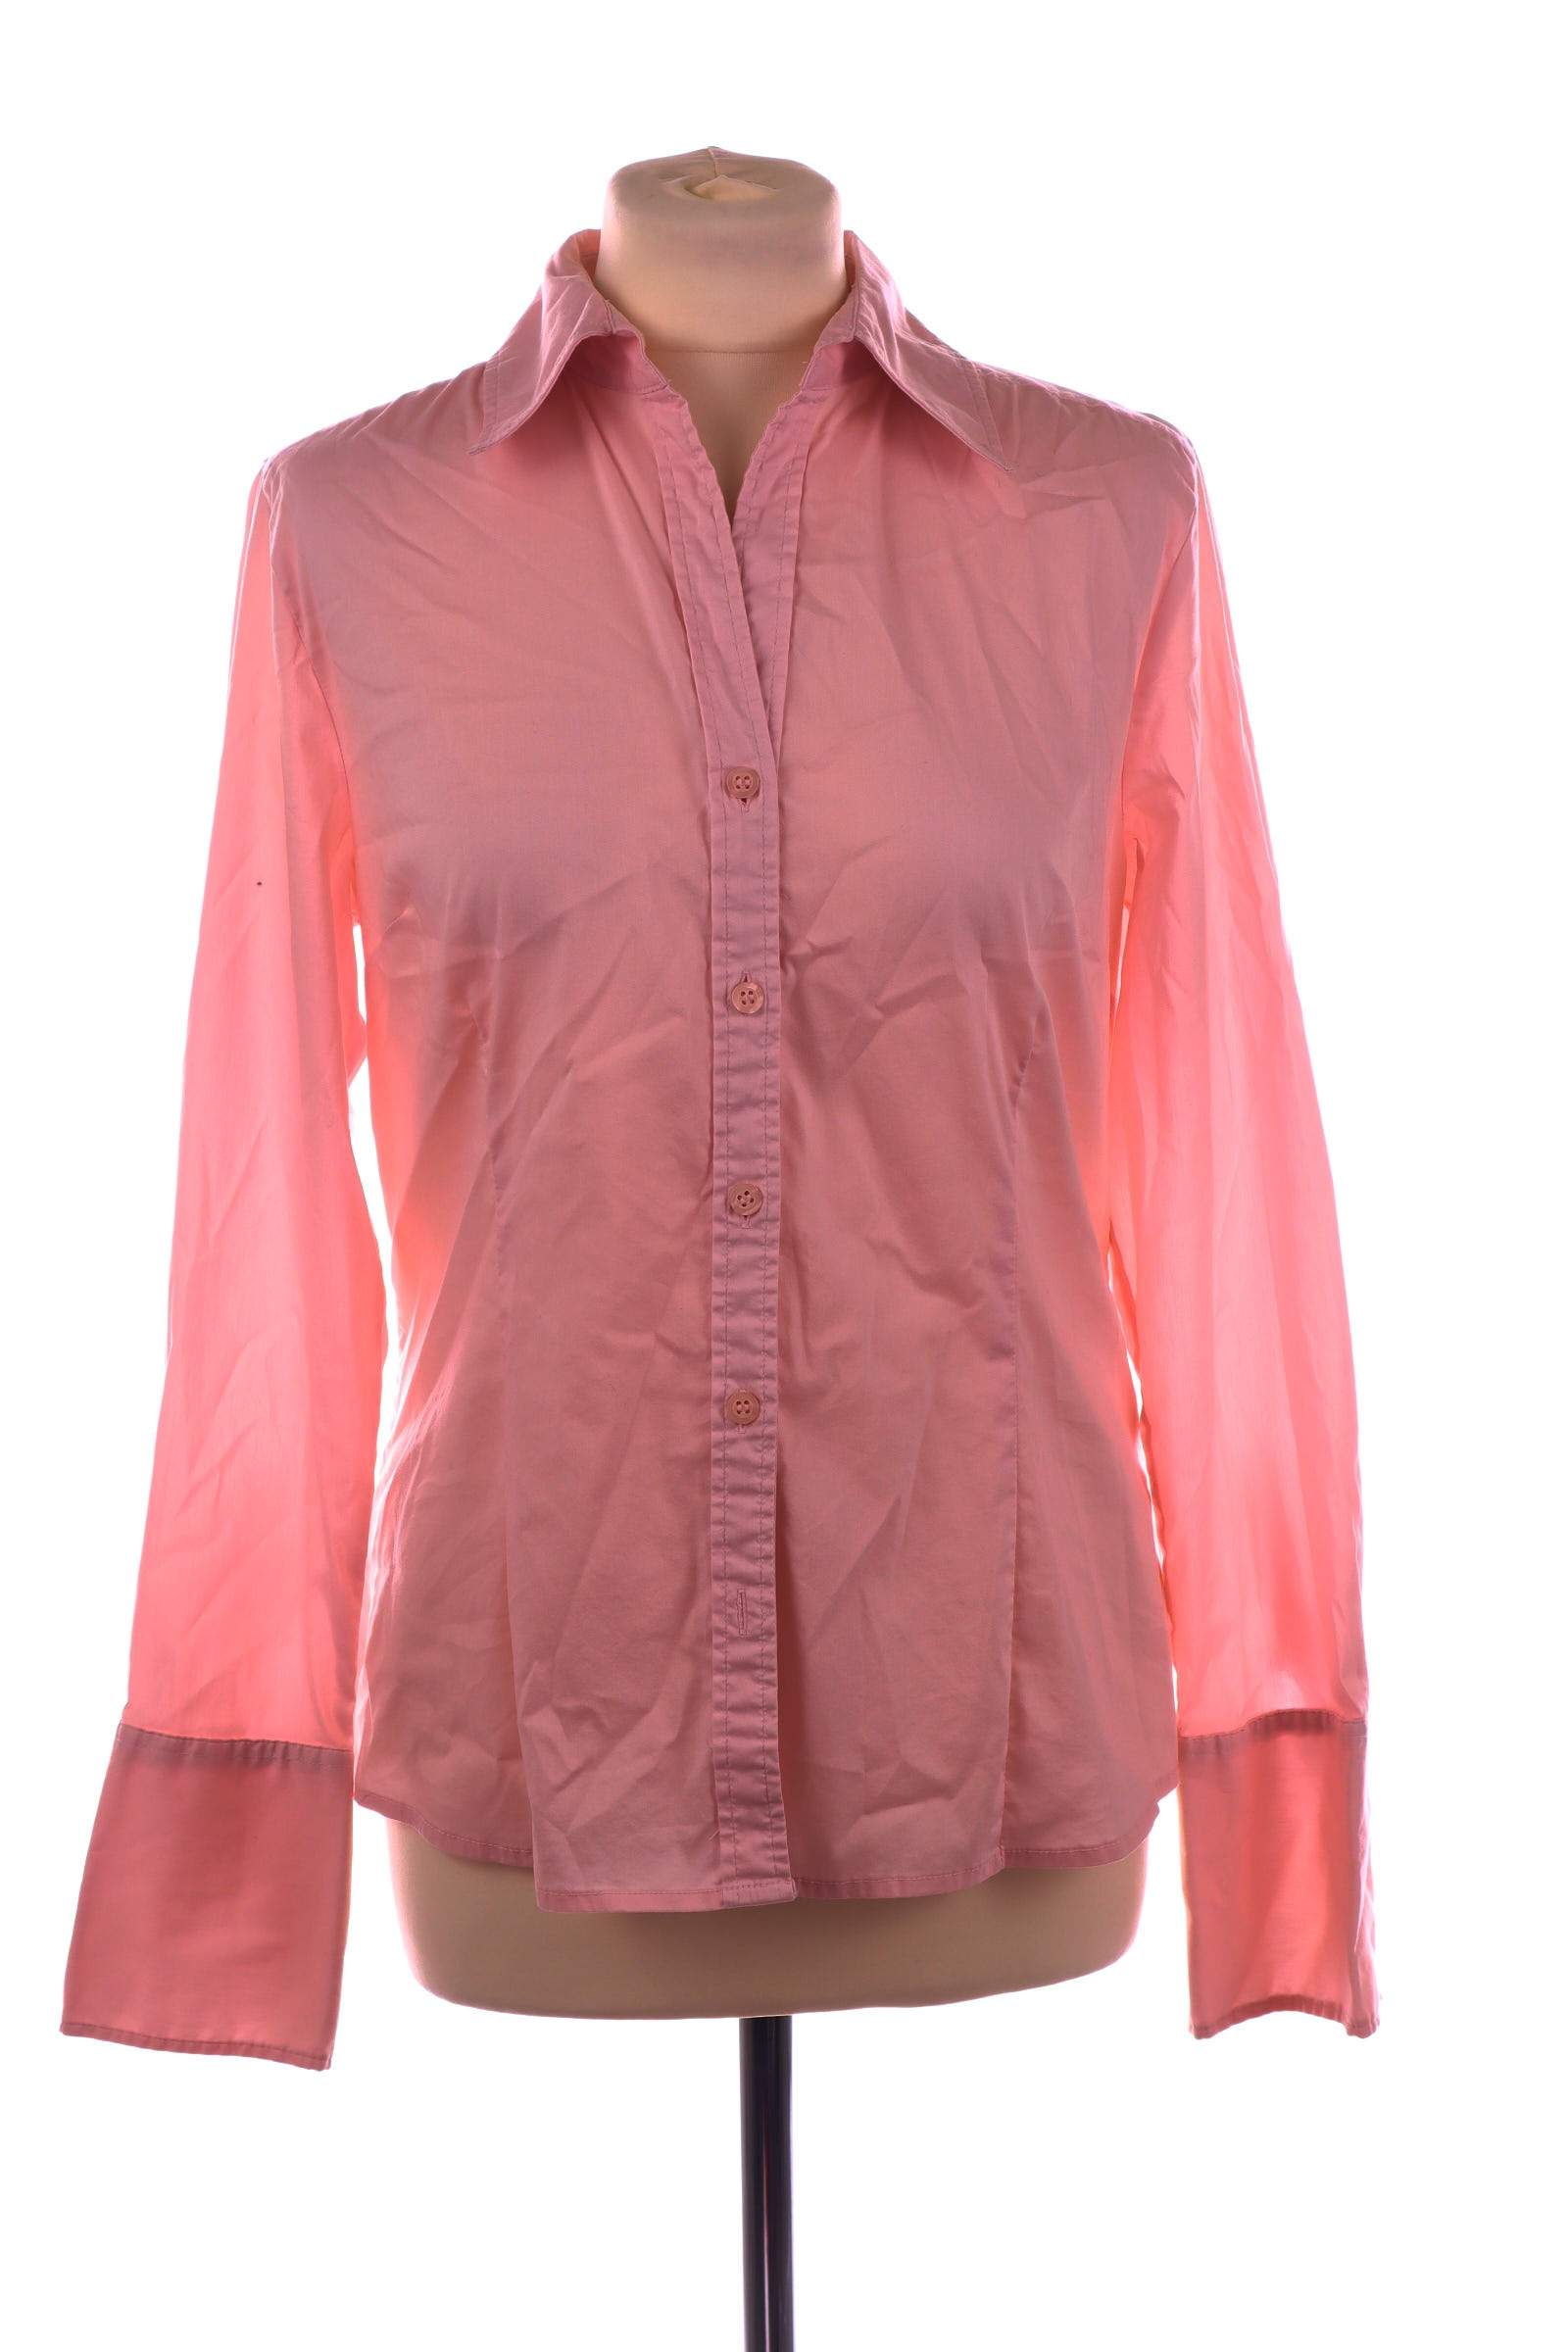 H&M Pink Top